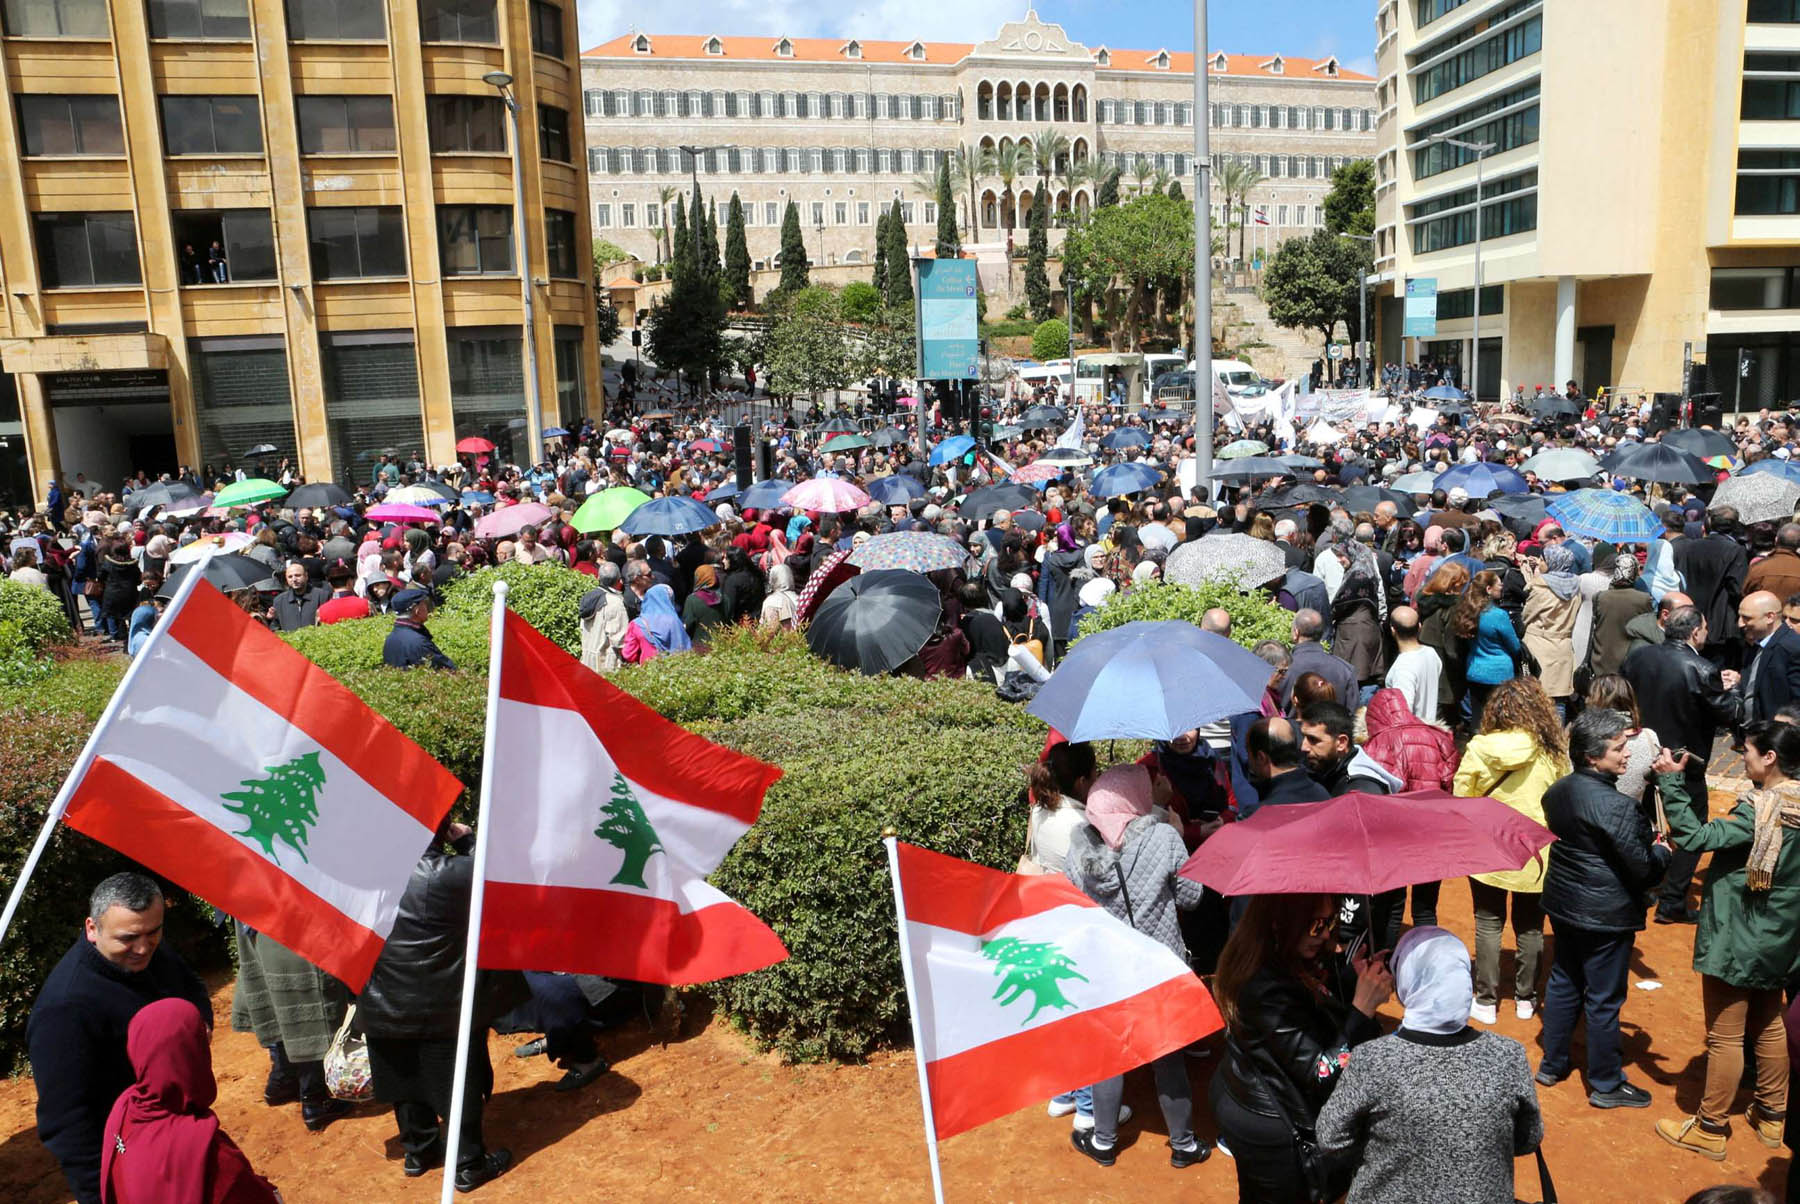 Brewing storm. Public sector workers hold Lebanese flags during a protest against cuts to their salaries in downtown Beirut, April 17. (Reuters)